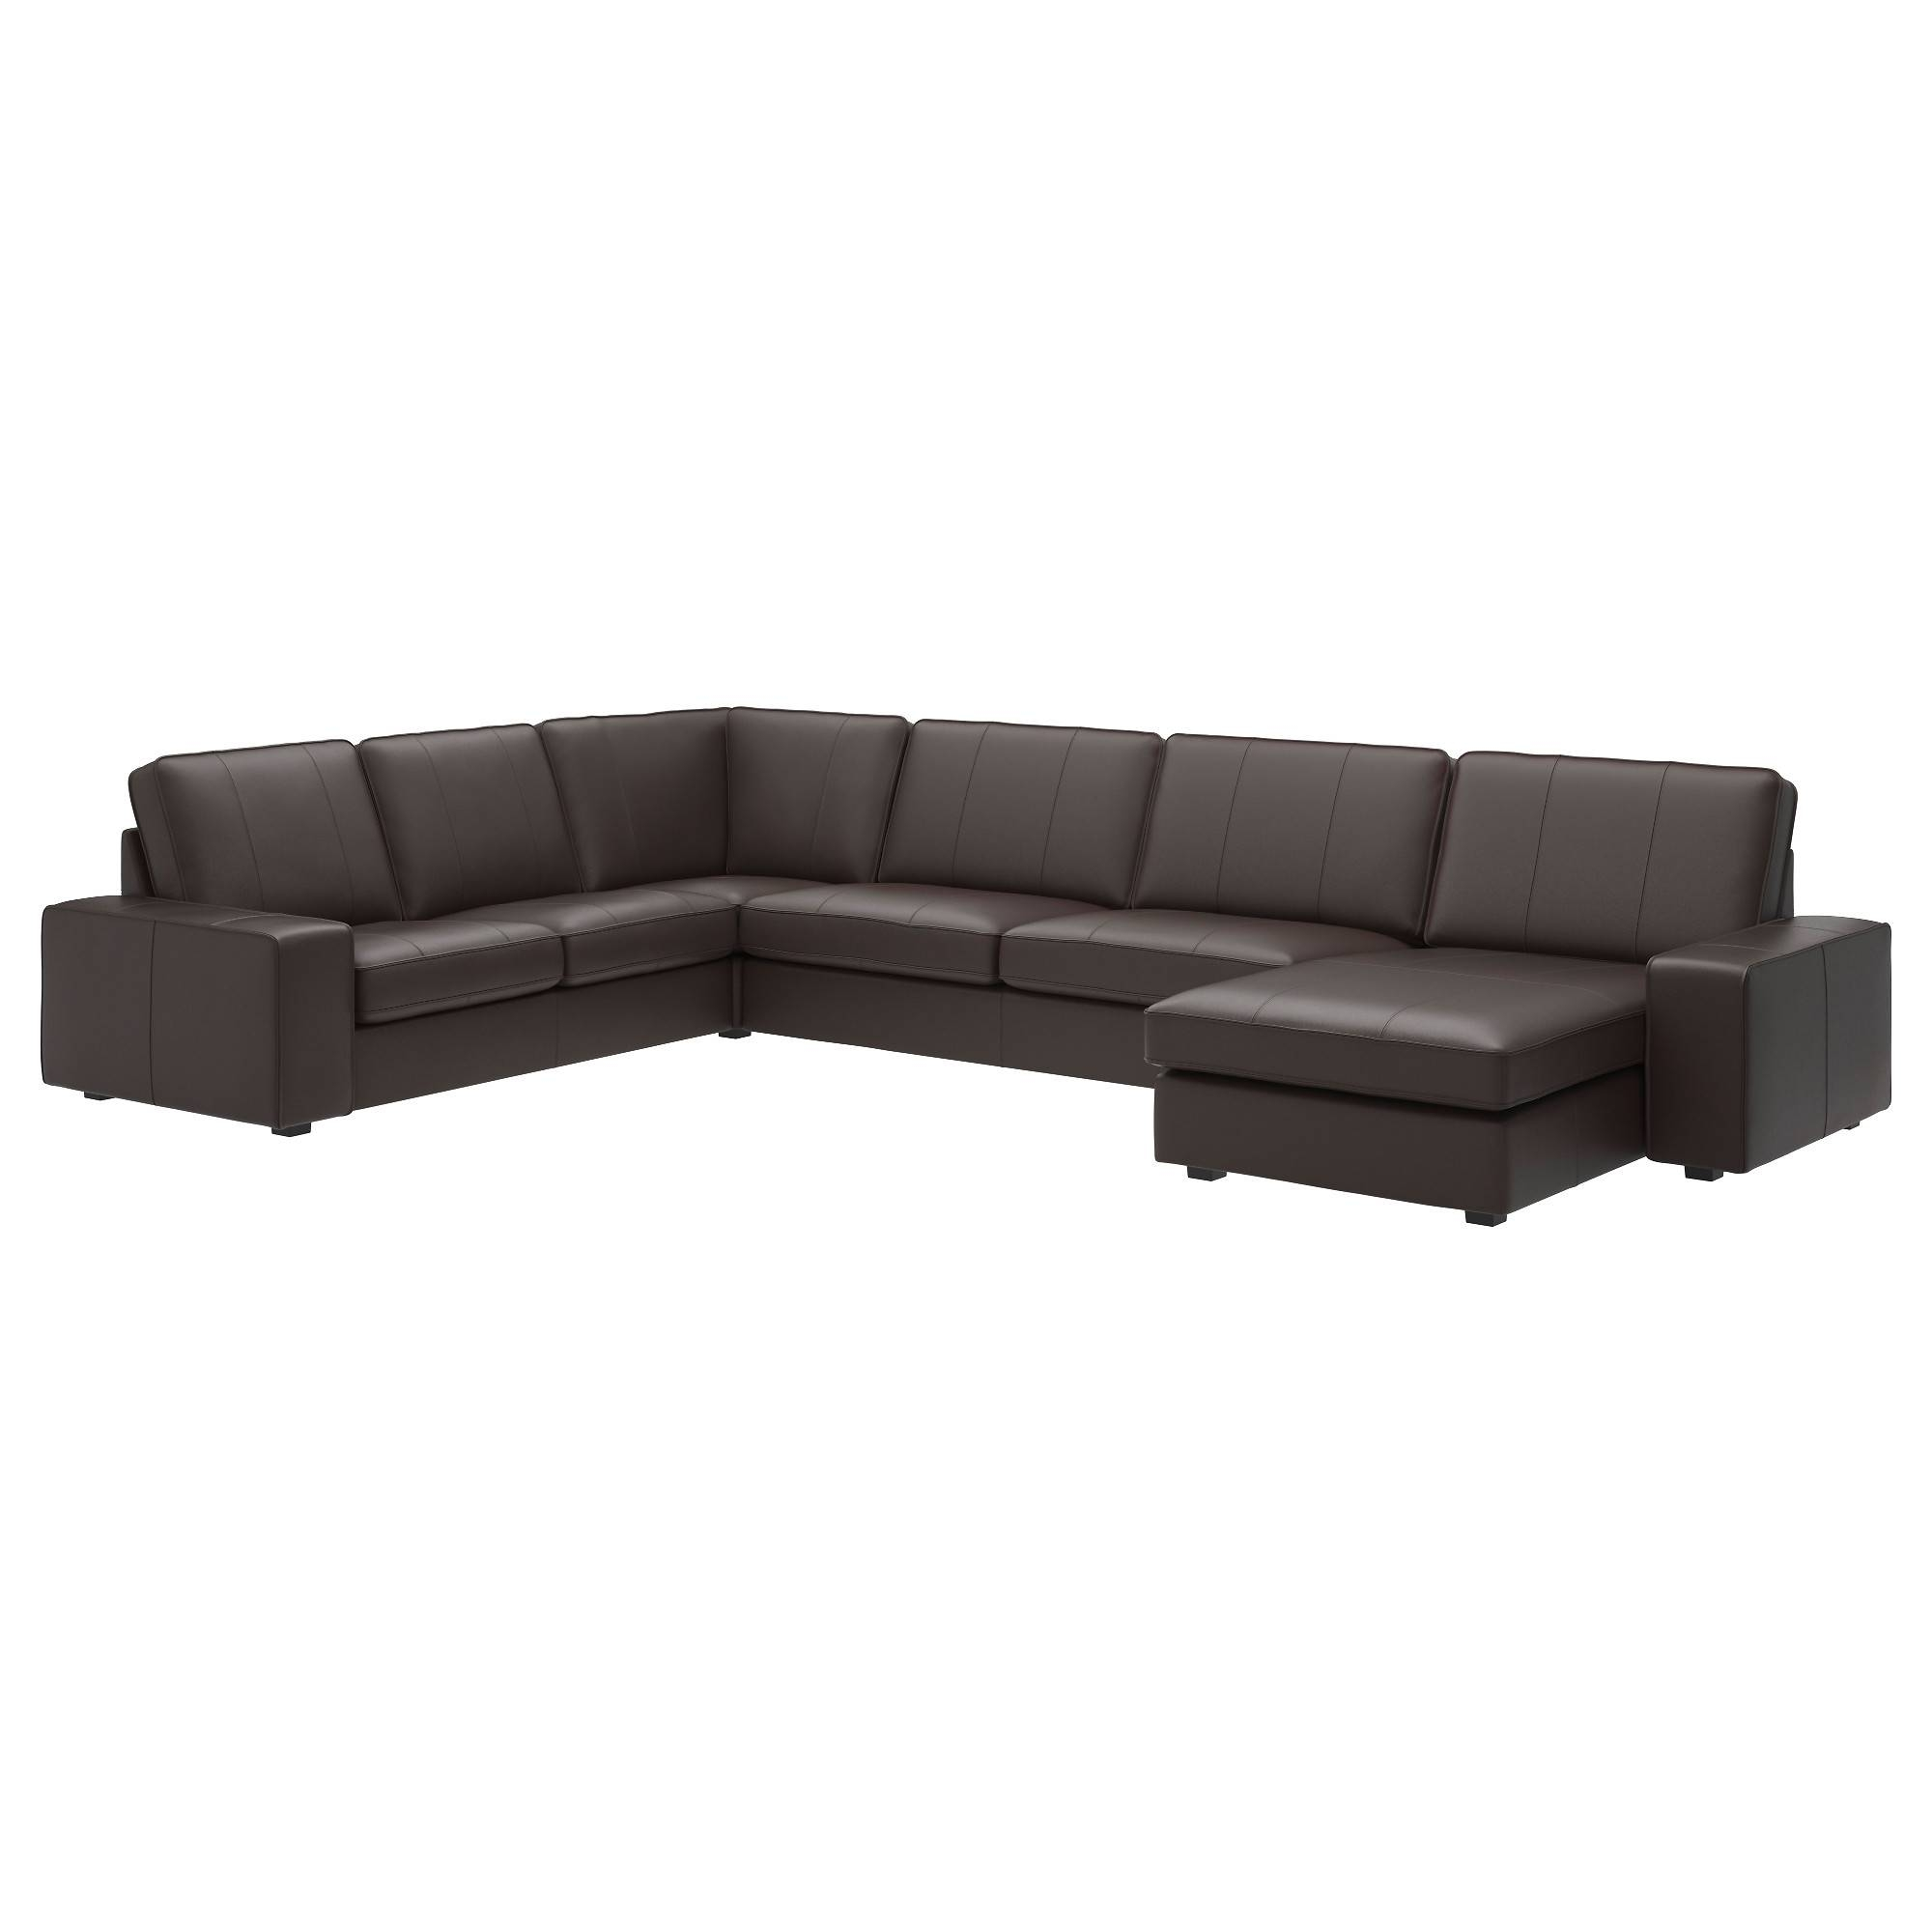 Leather & Faux Leather Couches, Chairs & Ottomans - Ikea throughout 6 Foot Sofas (Image 8 of 30)